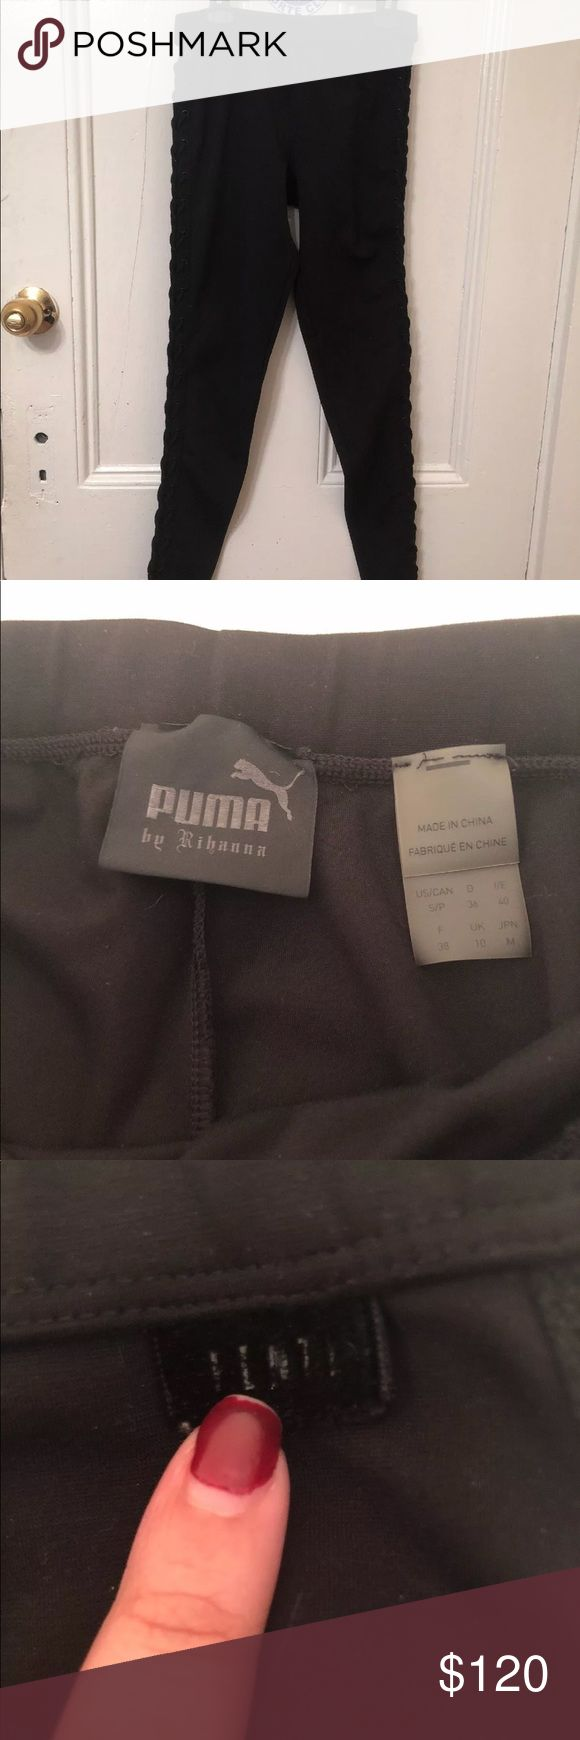 PUMA FENTY BY RIHANNA 🔥TWO PANTS PUMA FOR SALE TOGETHER🔥 I bough the both on puma's website, they are brand new, never used because they are too small for me and didn't fit me, comes with dust bag. Puma Pants Leggings